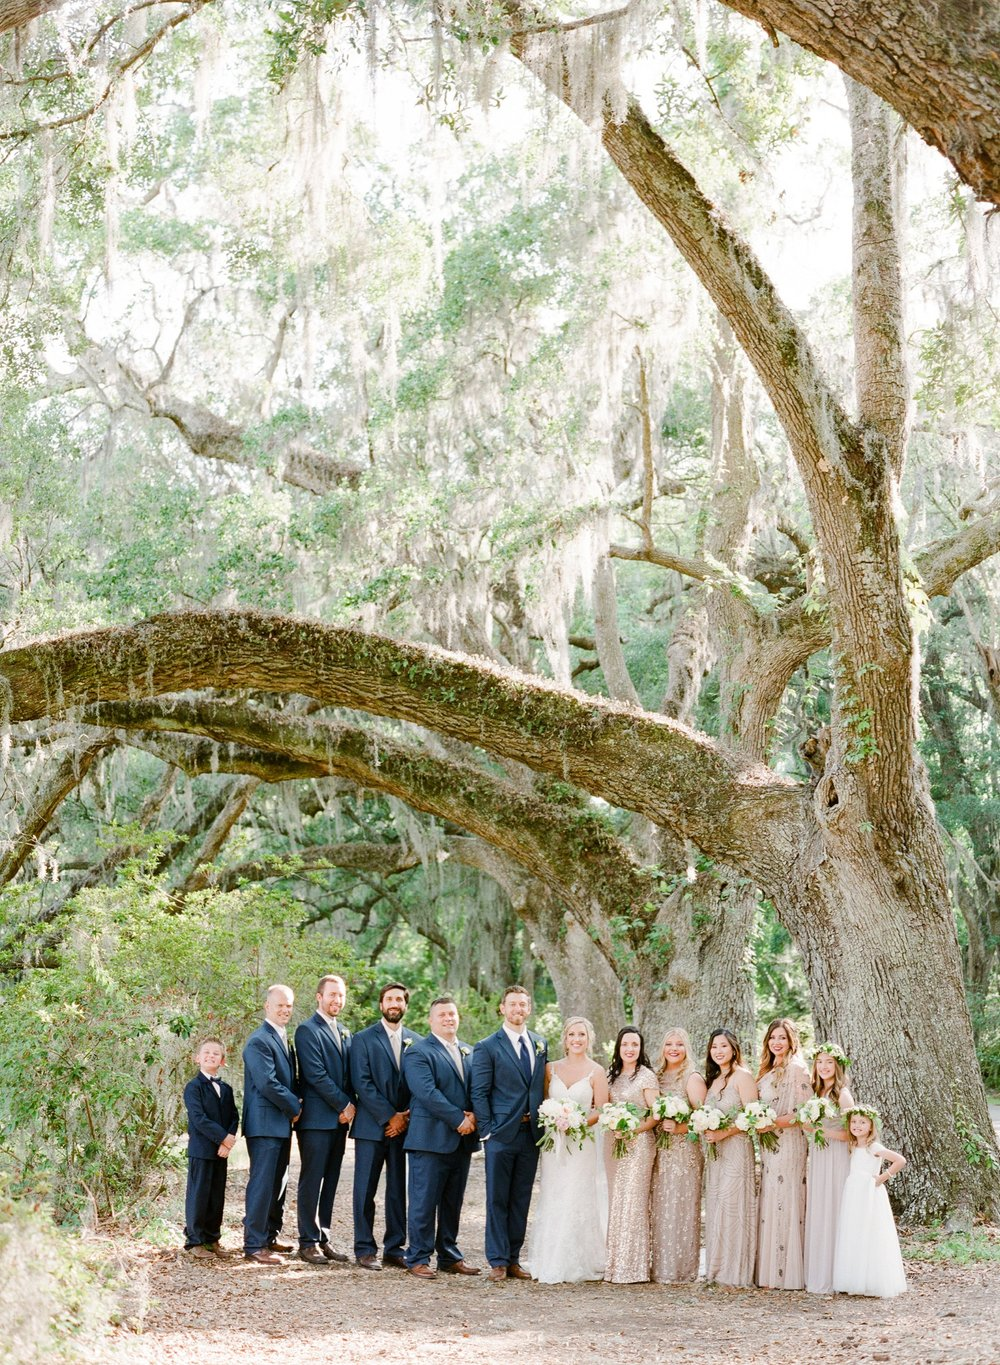 Magnolia-Garden-Southern-Weddings-Magazine_0025.jpg